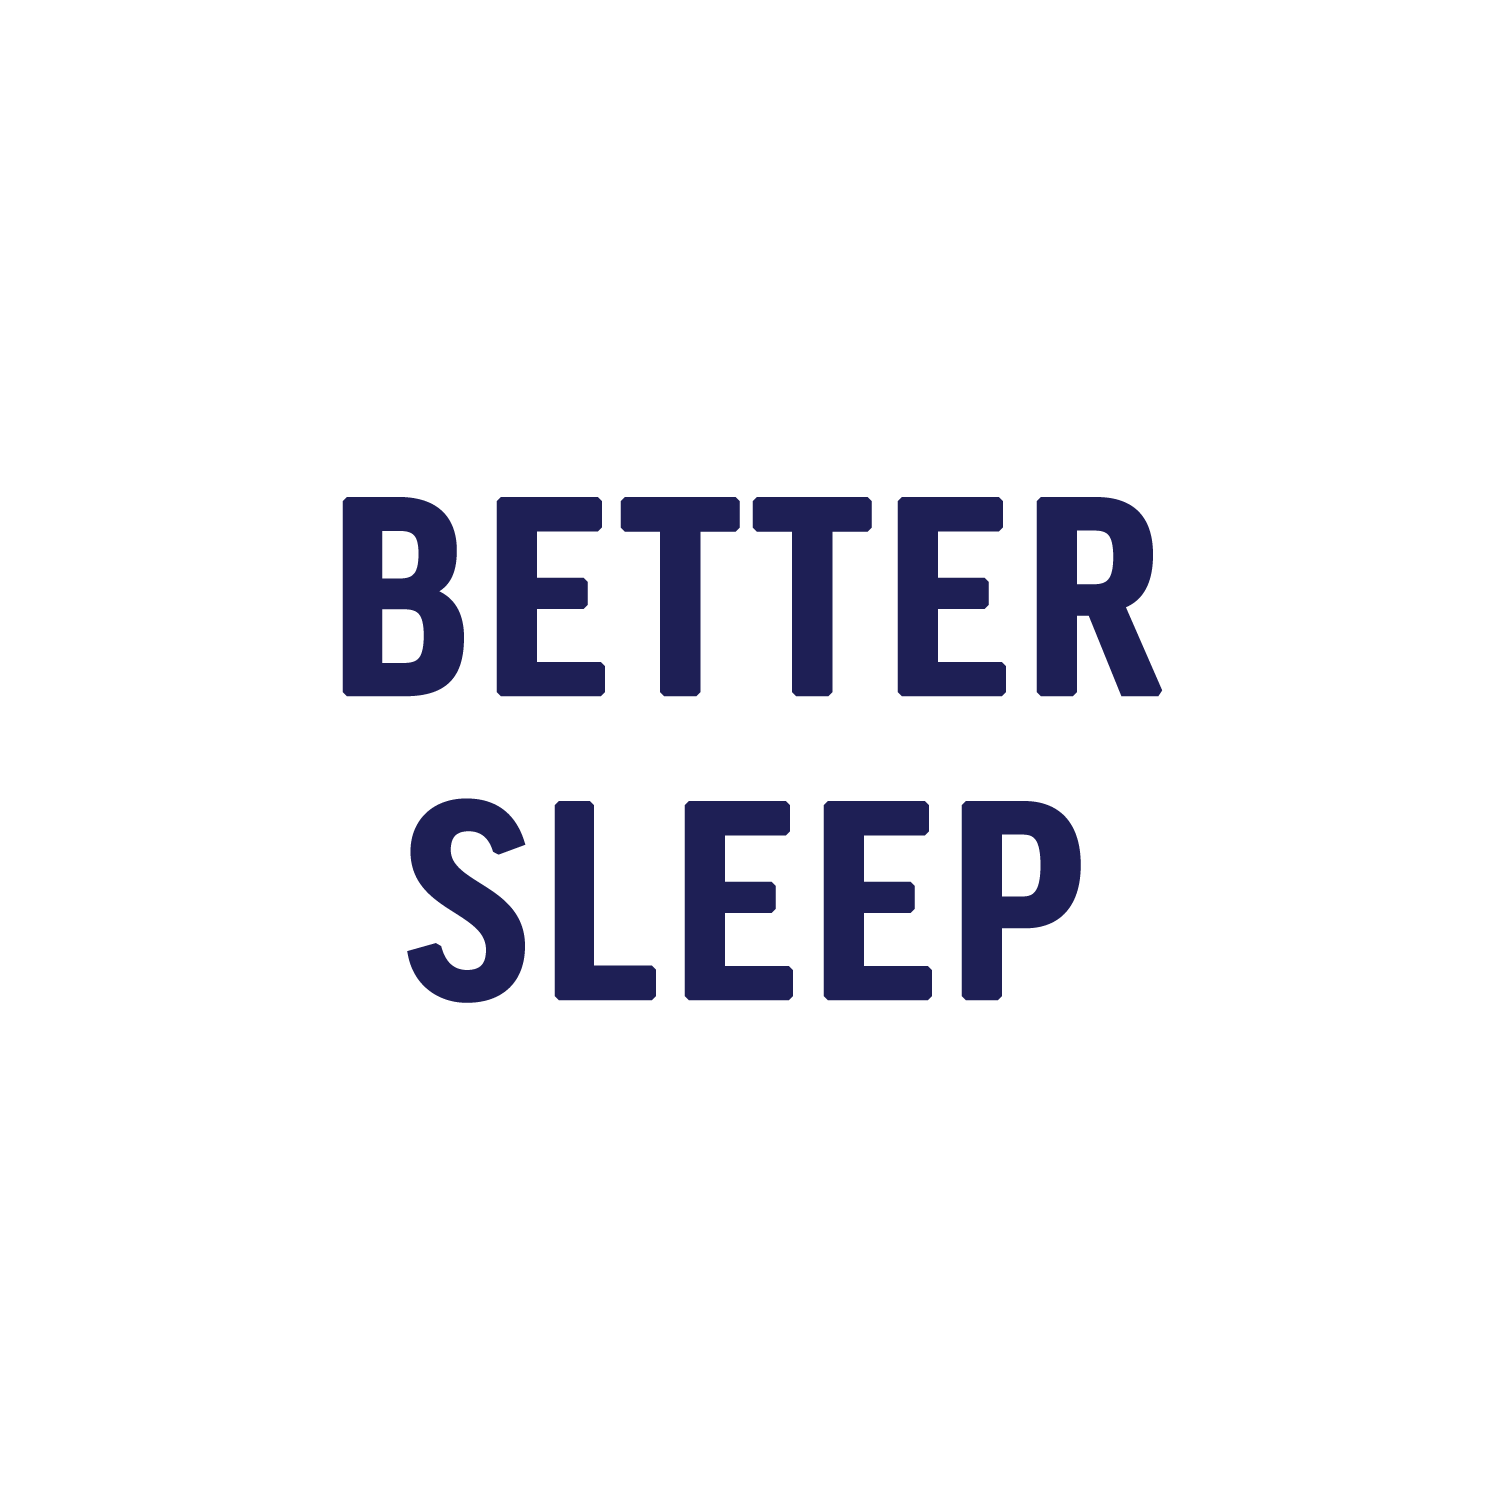 BETTER SLEEP.png